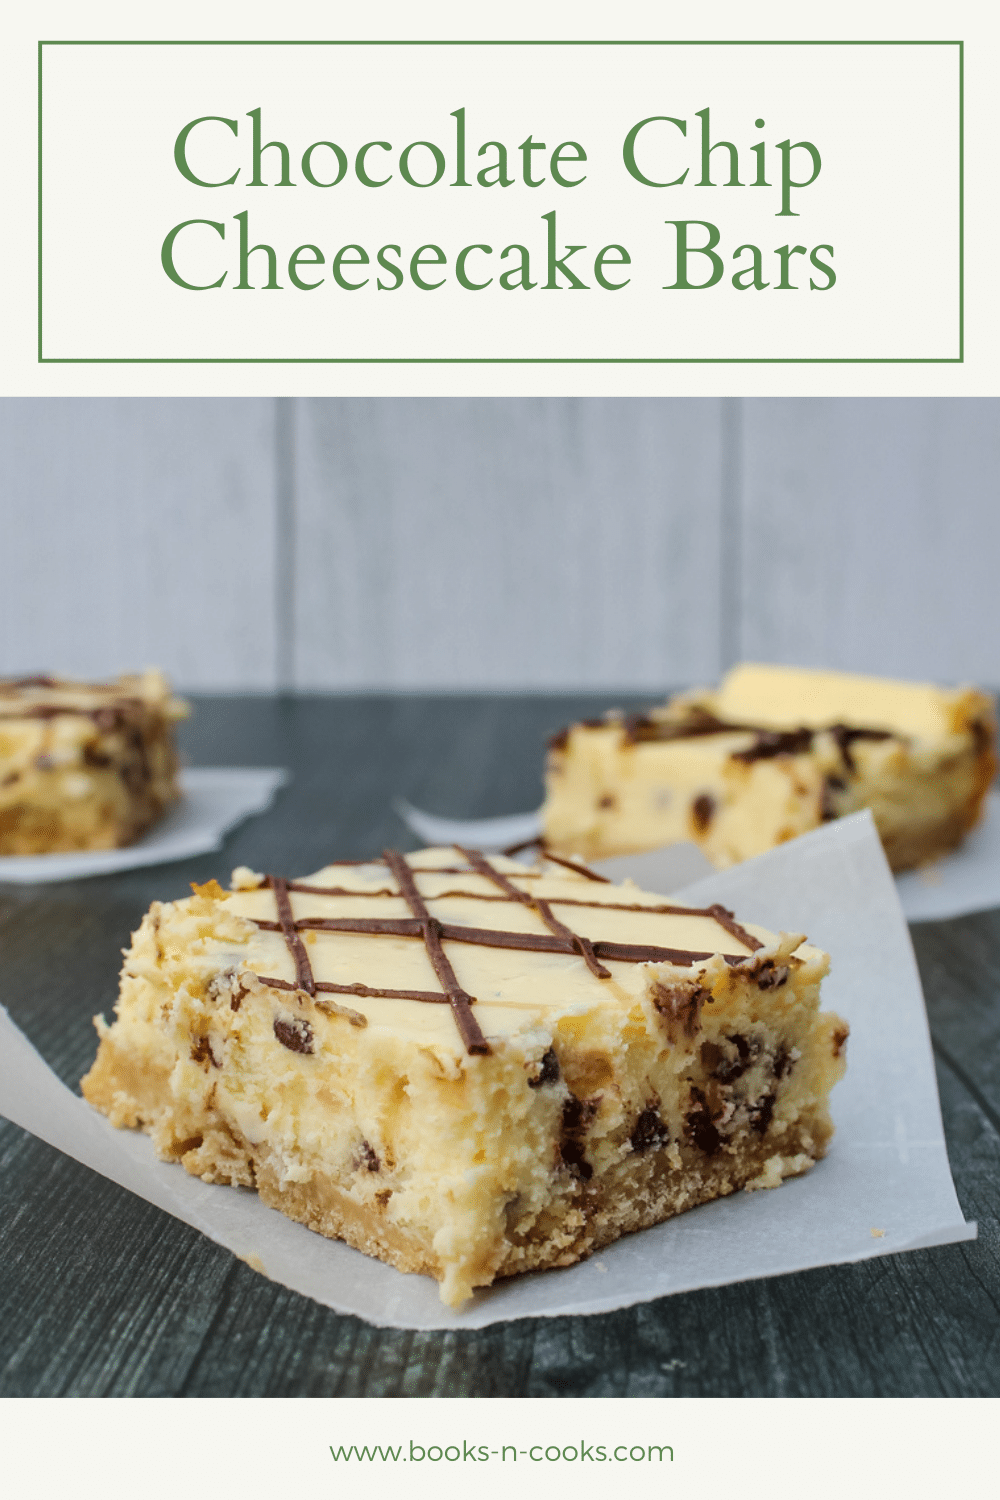 While you do need the oven for these Chocolate Chip Cheesecake Bars, these sweet treats are a light, bright dessert to enjoy all summer long.